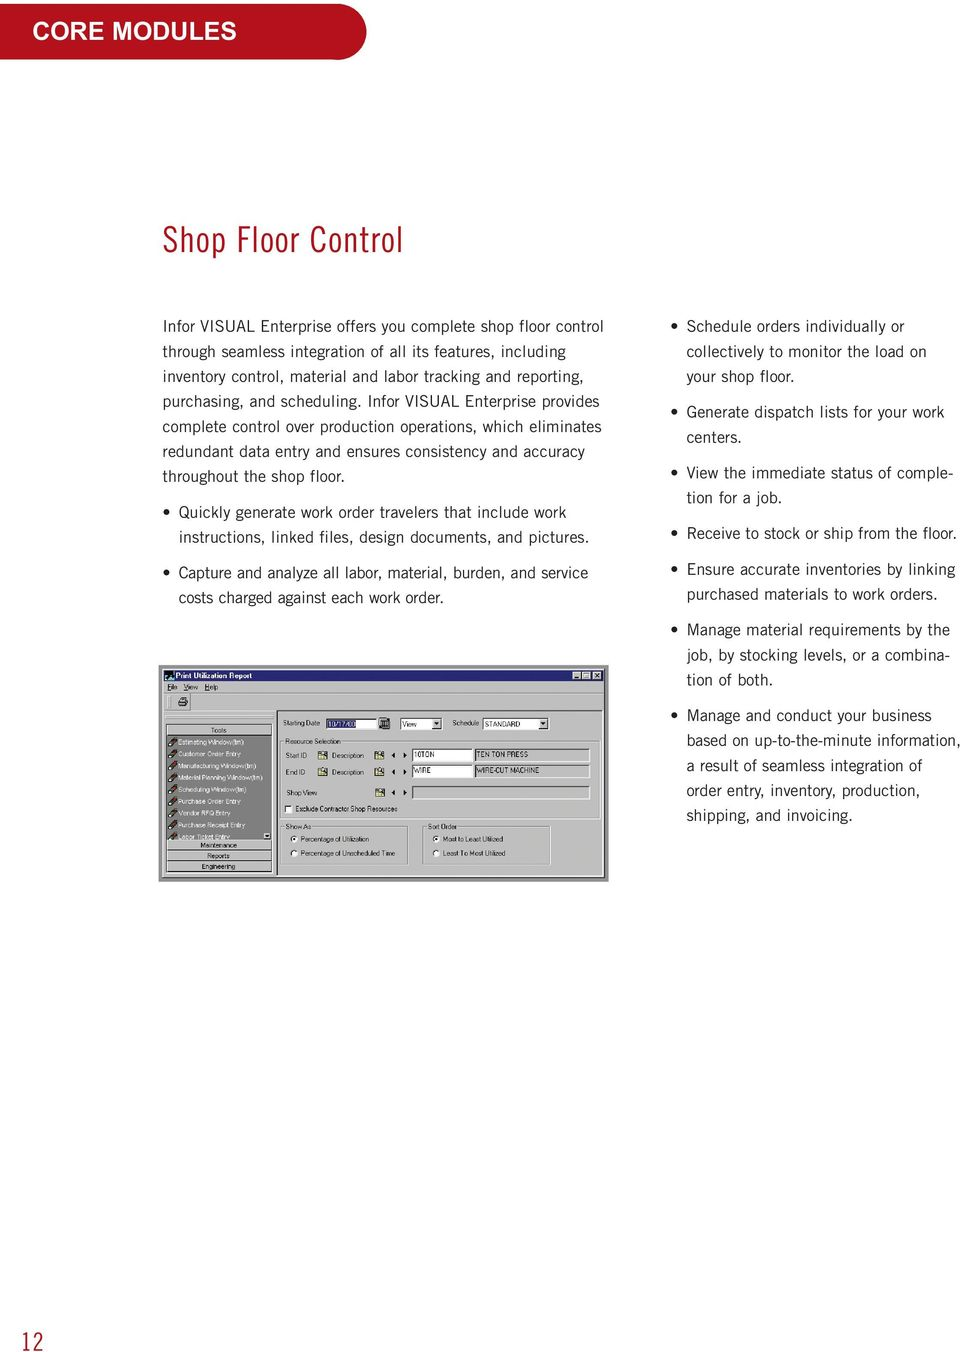 Infor VISUAL Enterprise provides complete control over production operations, which eliminates redundant data entry and ensures consistency and accuracy throughout the shop floor.